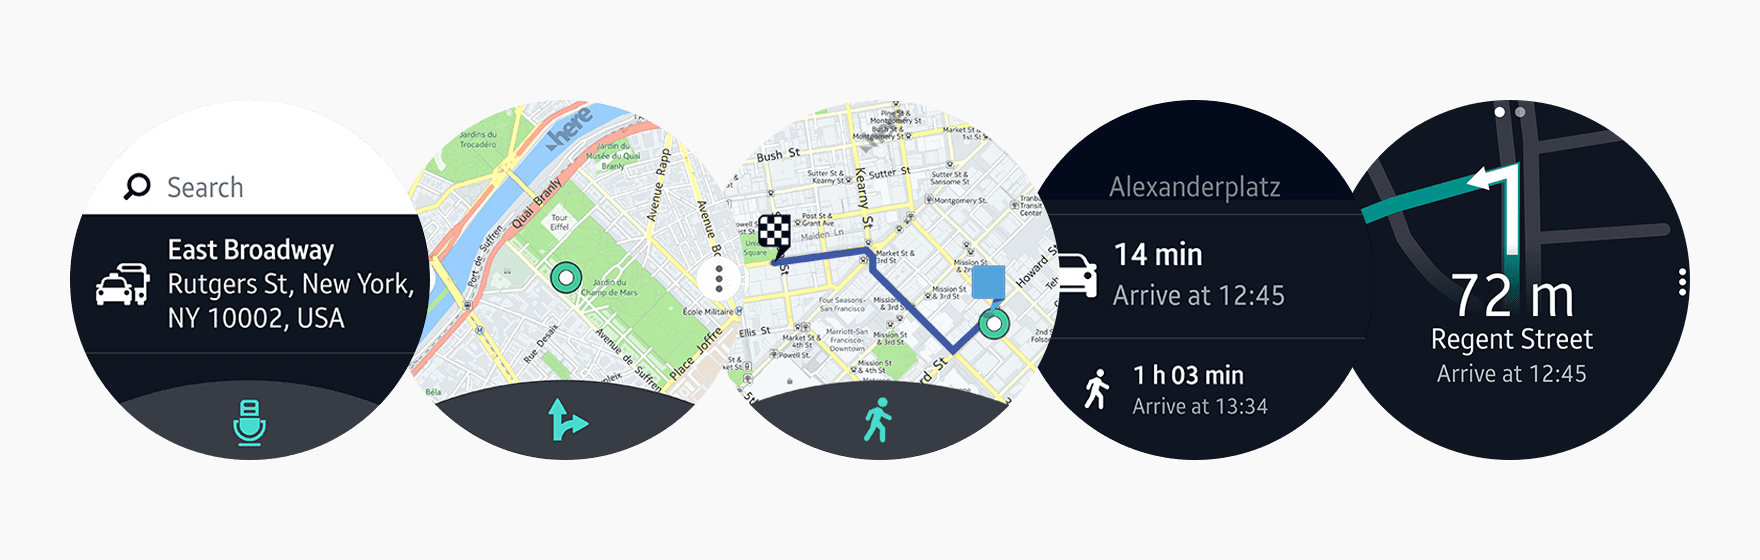 HERE WeGo shows maps and journey directions. Users can search for addresses vocally, zoom in and out of the map using the bezel, and explore the map by swiping in any direction.